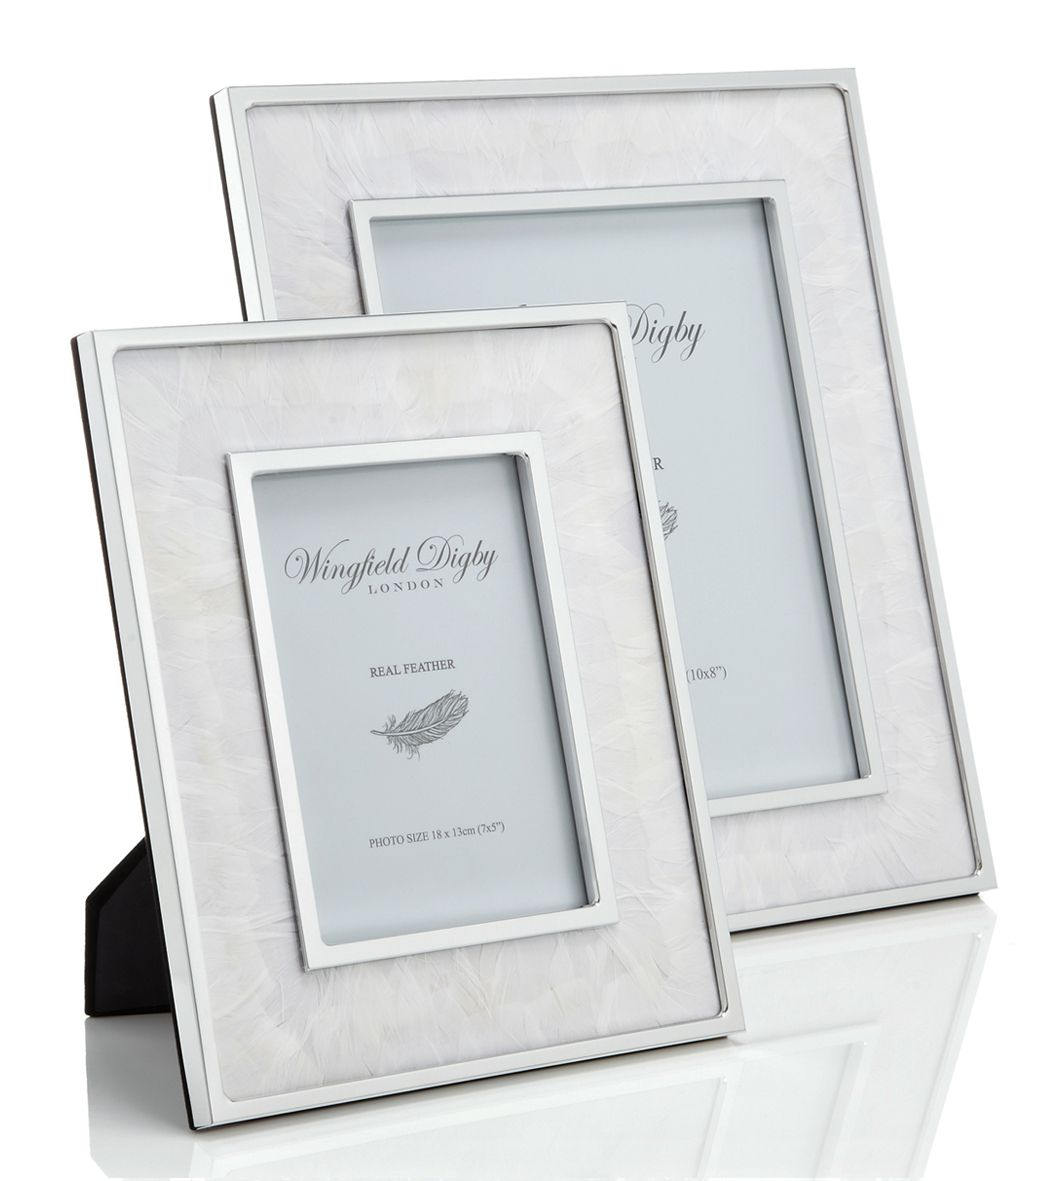 Wingfield Digby White Goose Feather Small Photo Frame Uber Interiors Trend Insight Feathers Glass Photo Frames Frame Small Photo Frames